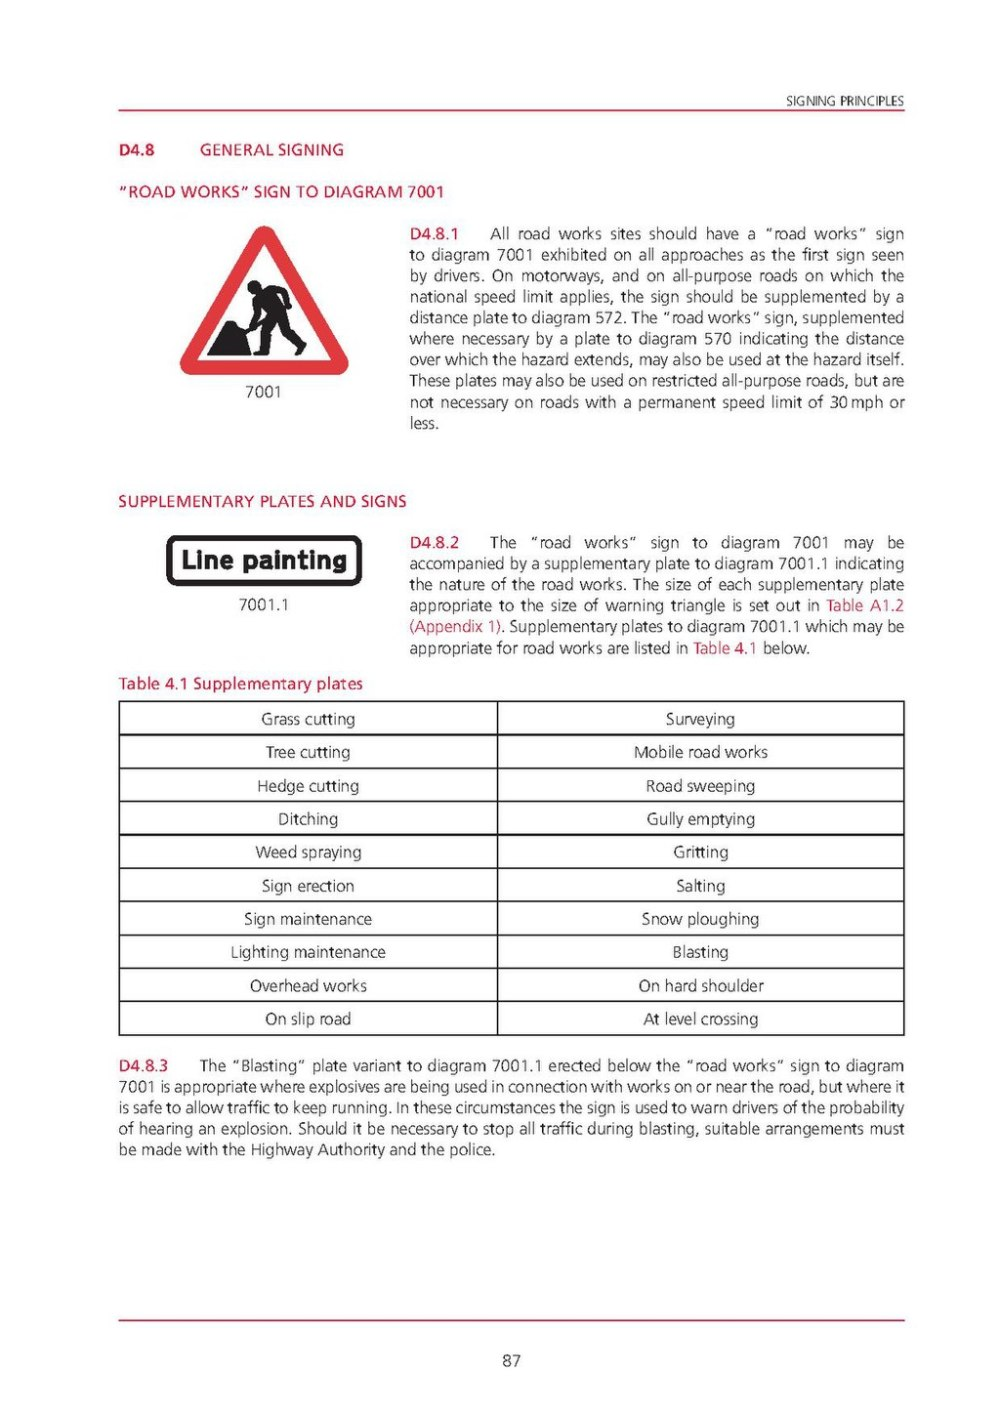 medium resolution of page uk traffic signs manual chapter 8 part 1 traffic safety measures and signs for road designs 2009 pdf 88 wikisource the free online library